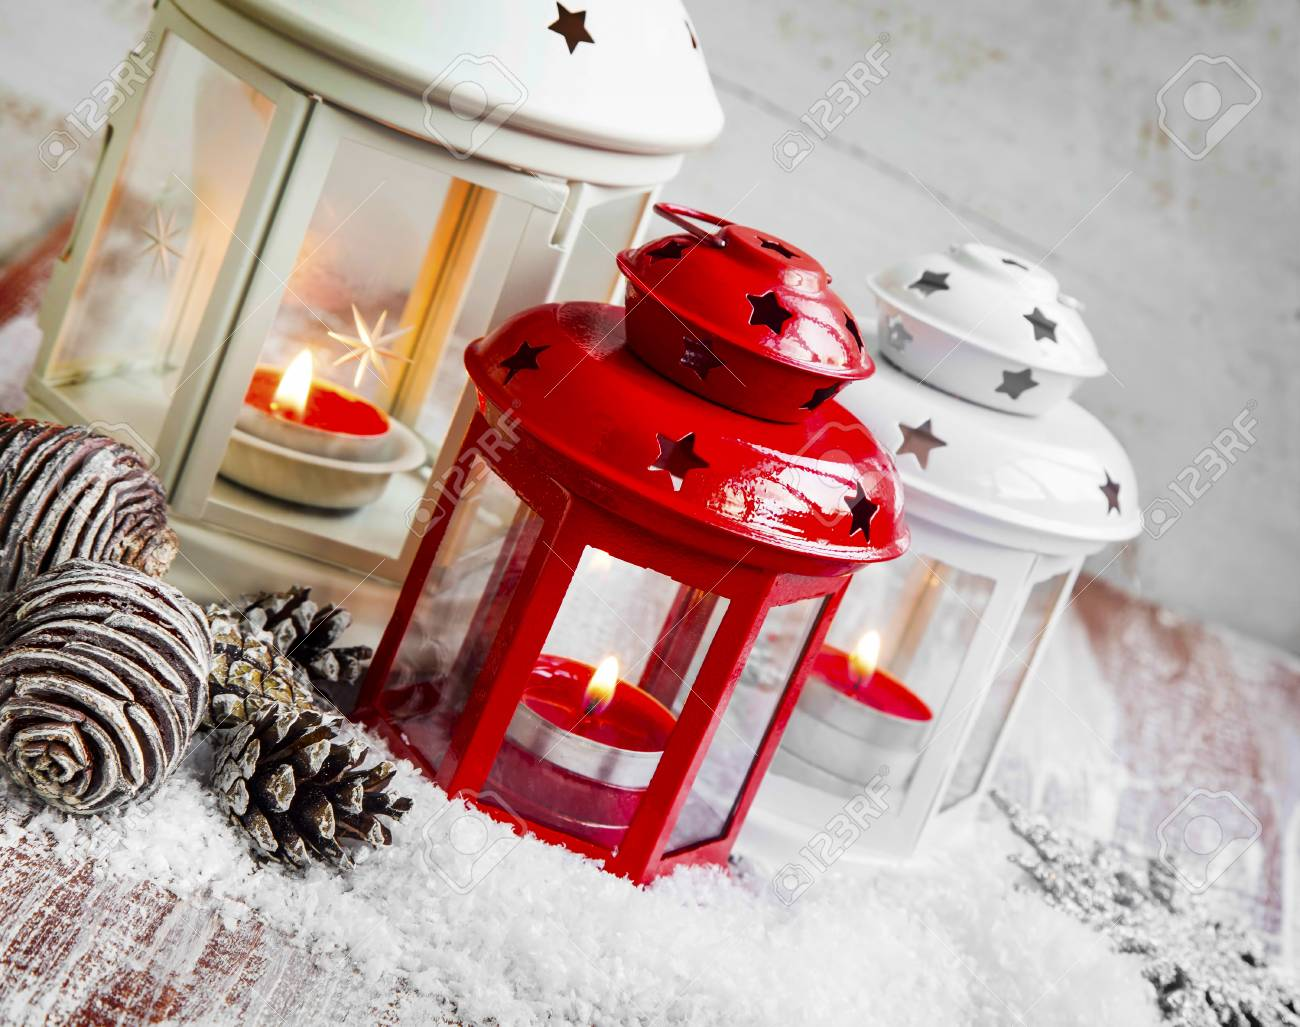 Christmas Lanterns.Christmas Lanterns With Burning Candles And Ornaments In The